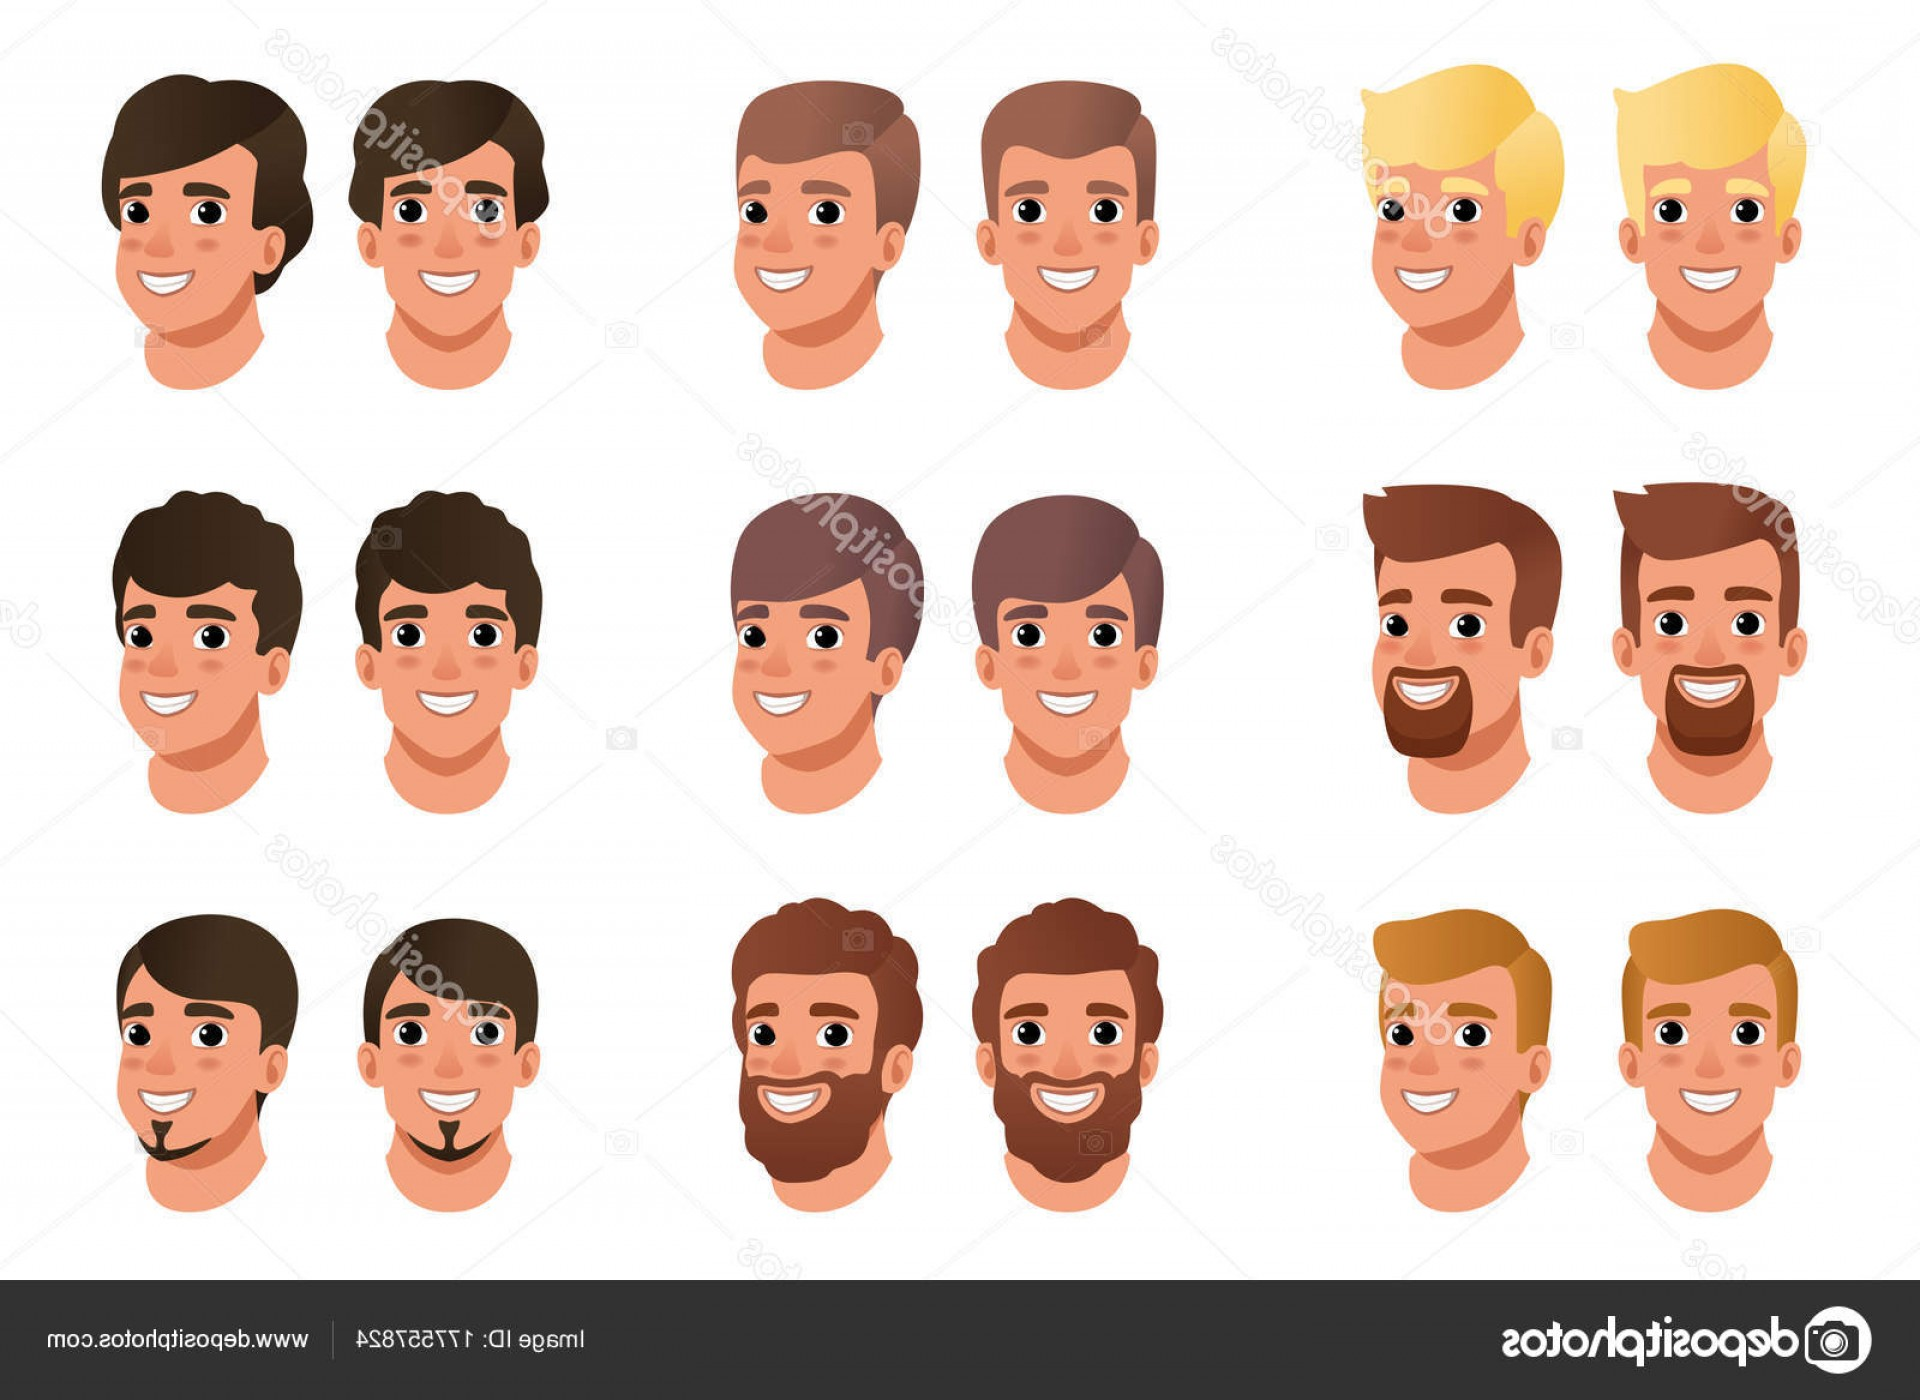 Short Men's Hair Vector: Stock Illustration Cartoon Set Of Men Avatars